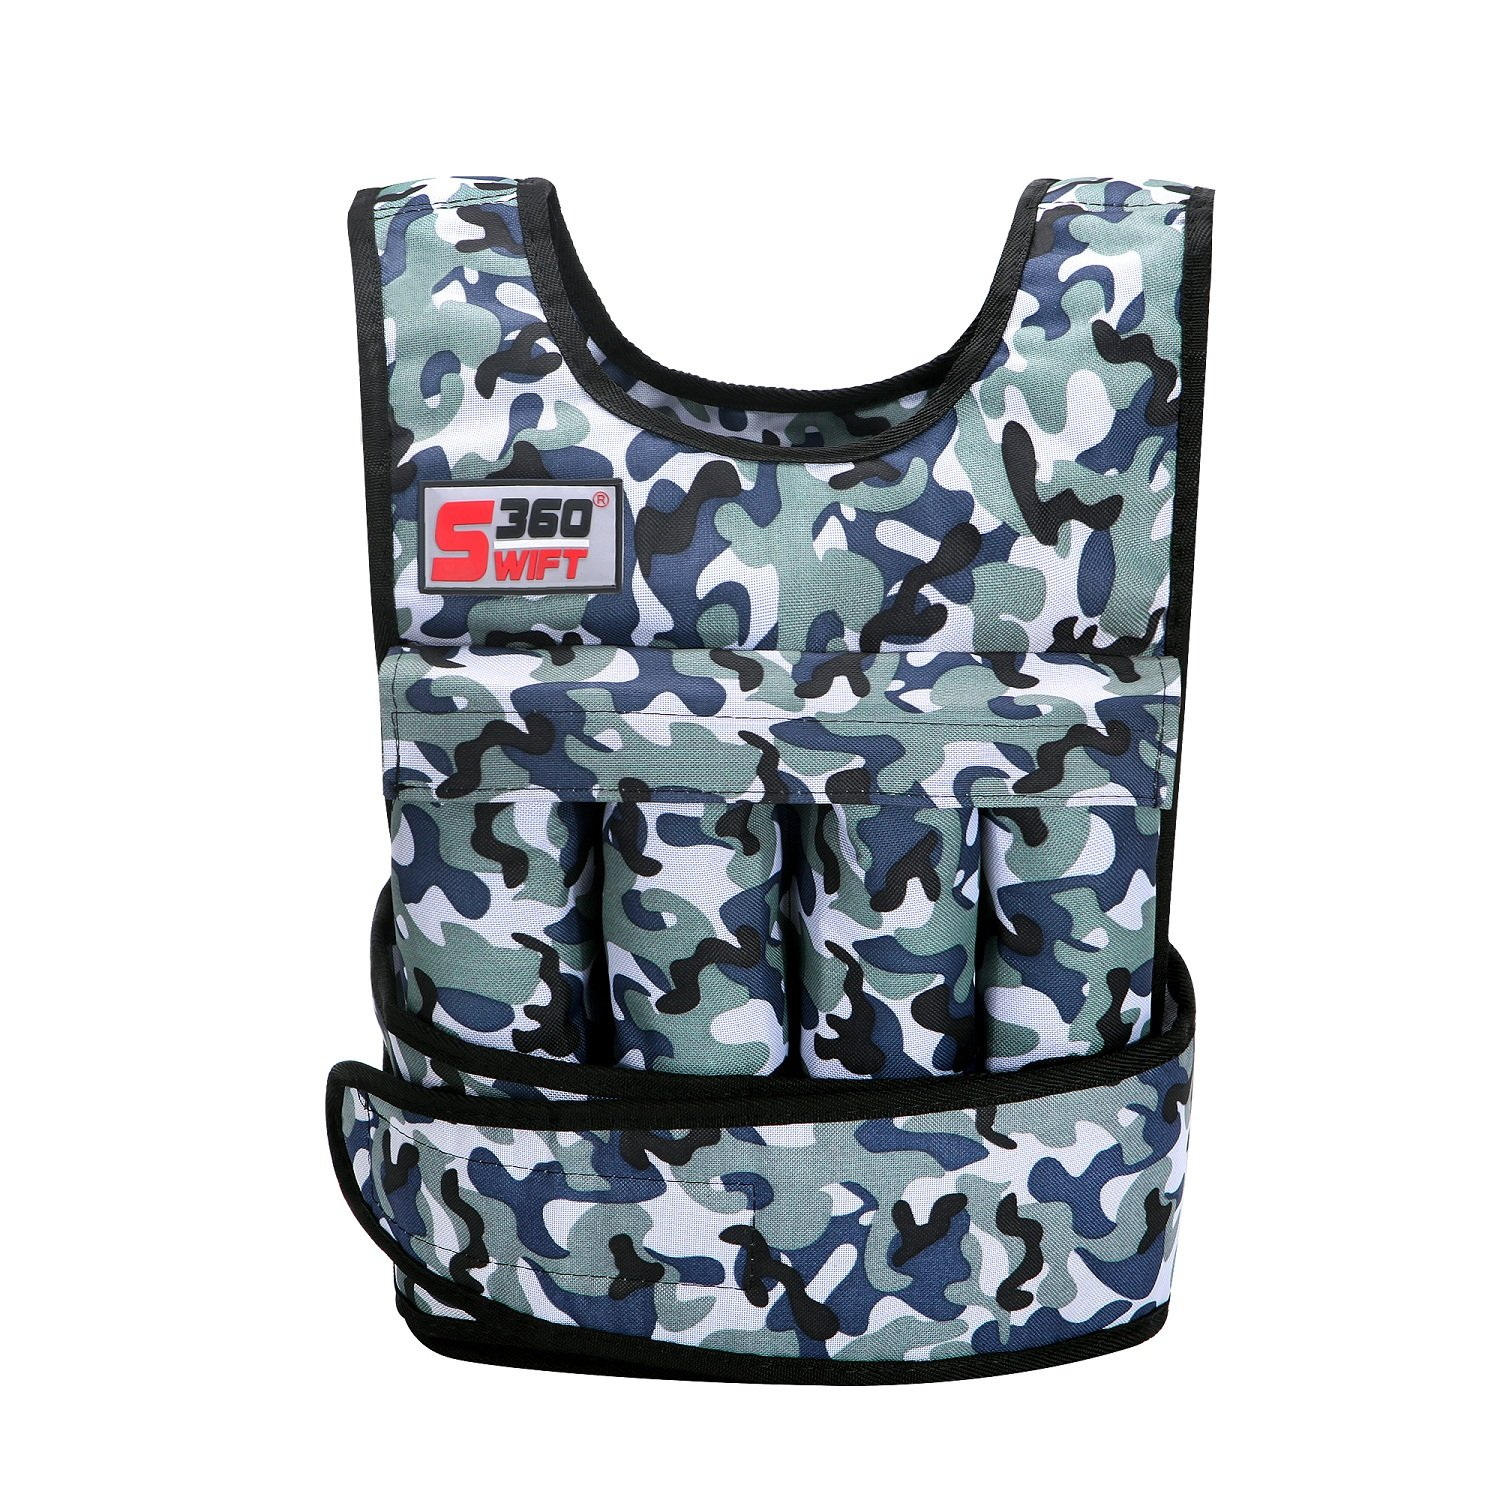 Swift360 Weighted Vest for Men 20 40lbs Adjustable Female Fitness Gear Cross-fit Training Exercise Camouflage Black